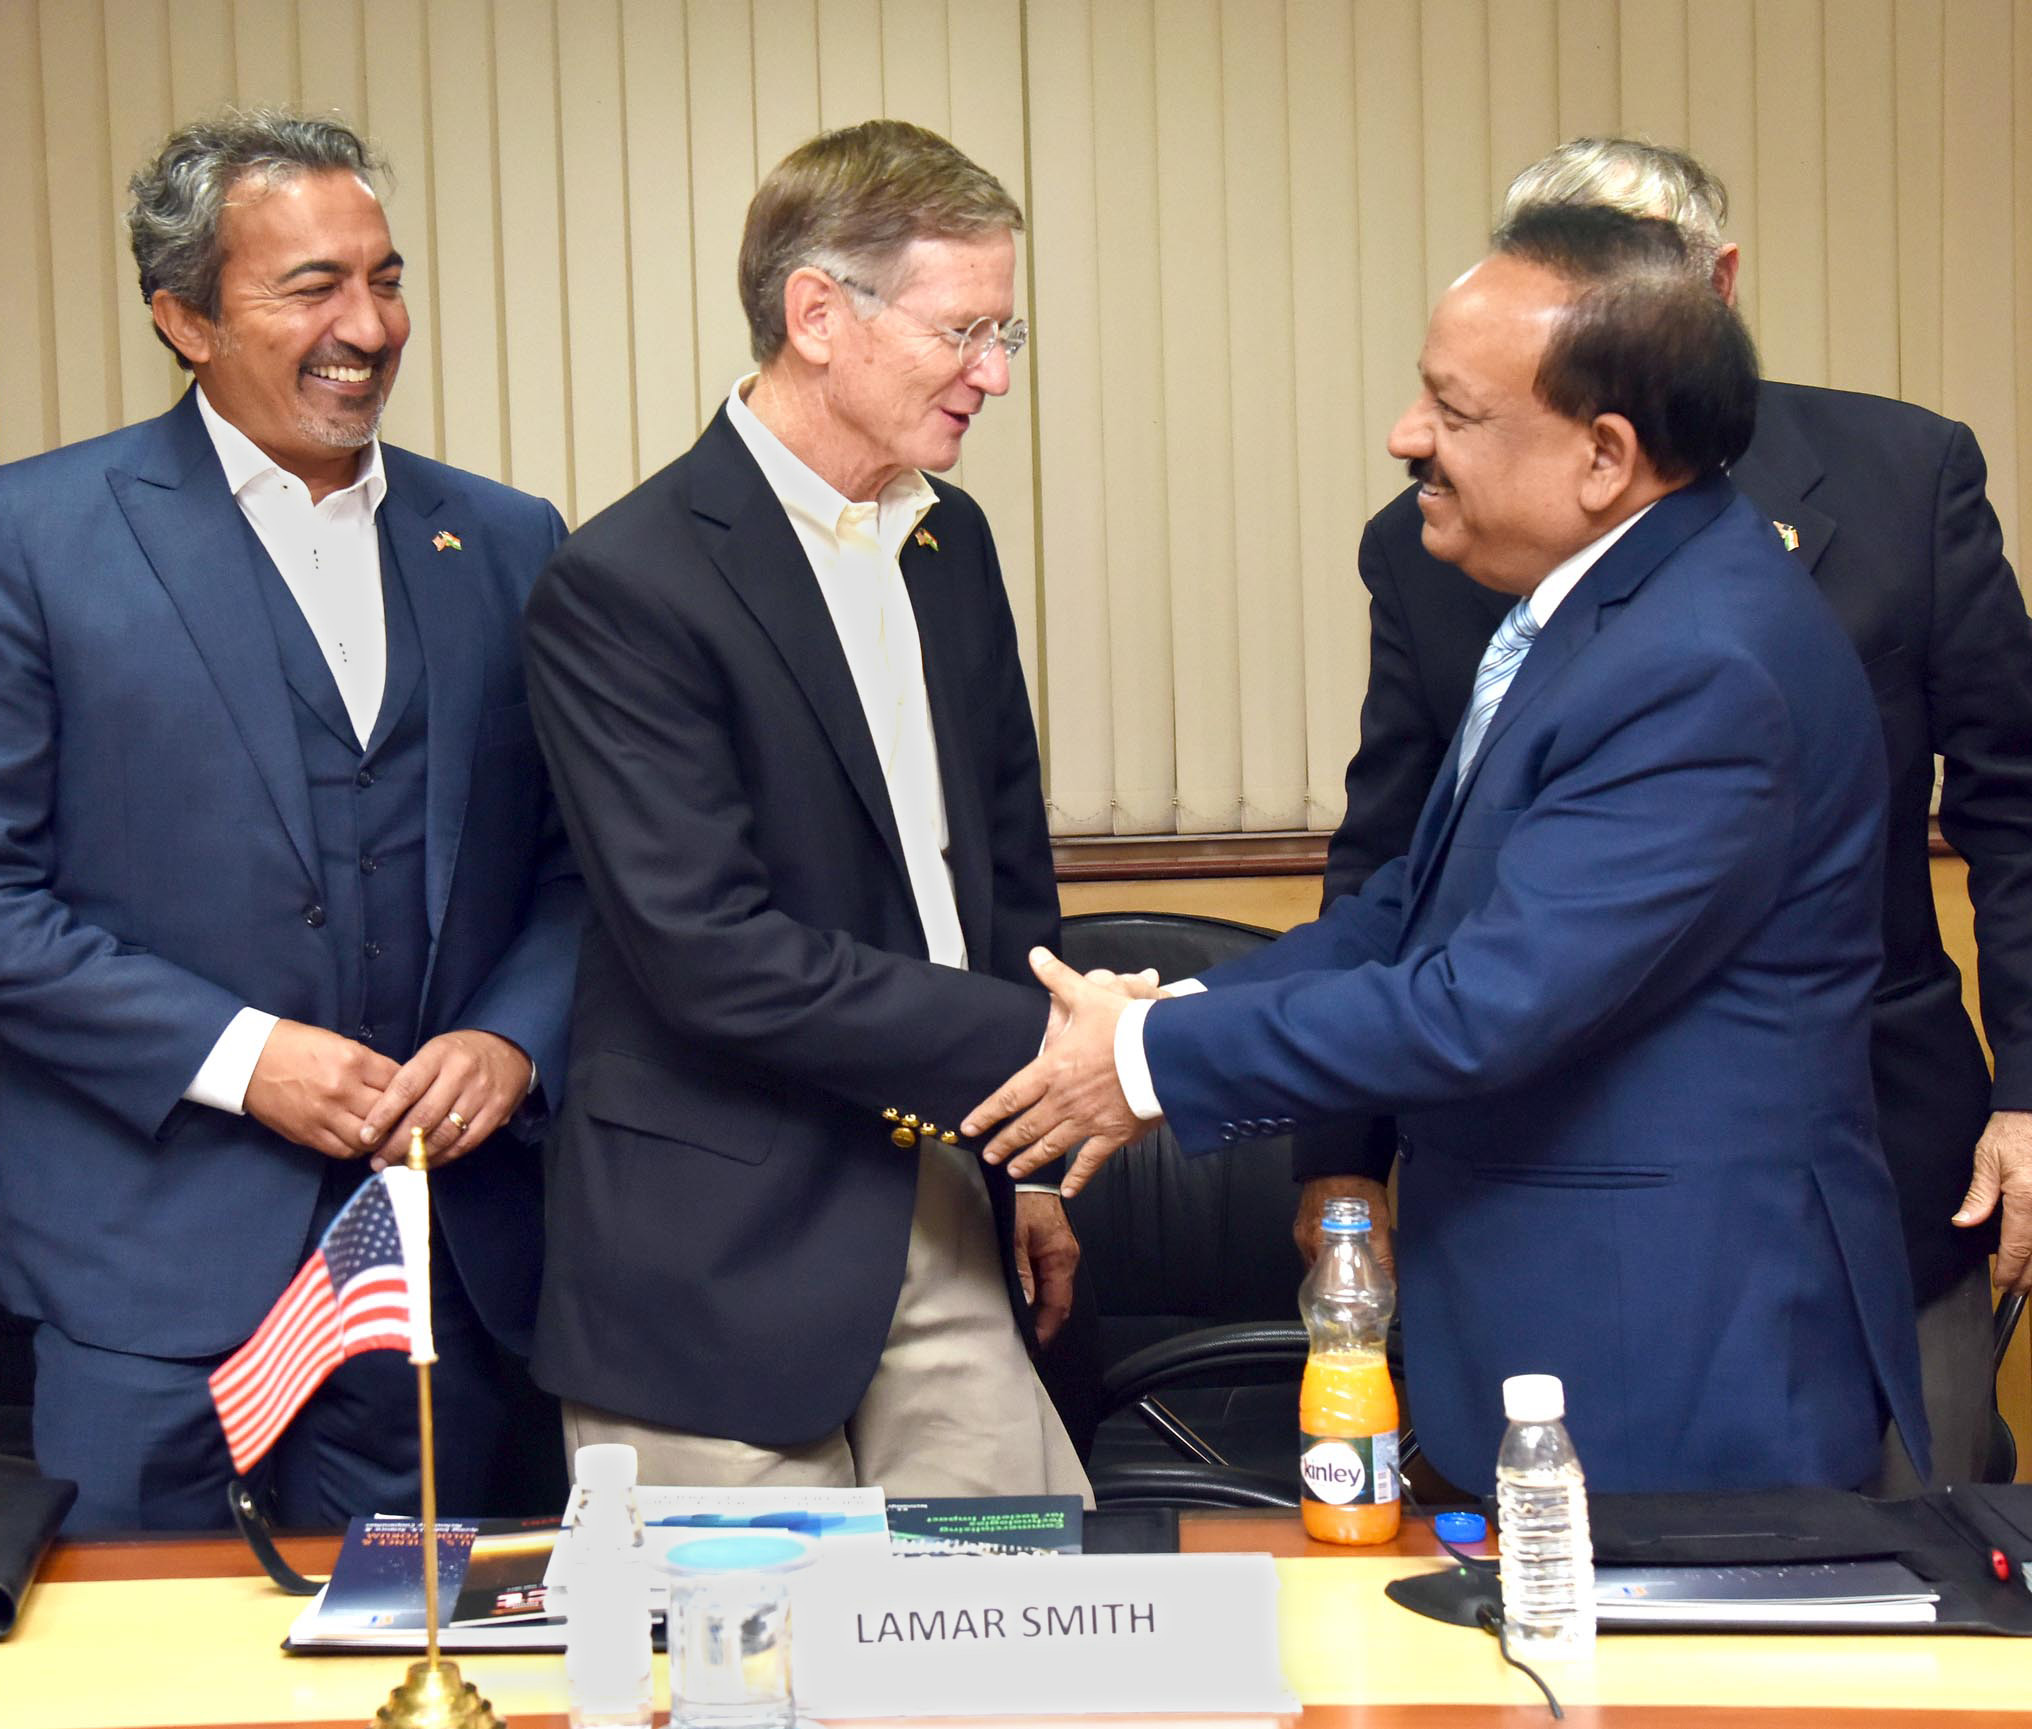 The US Congressional delegation led by the Chairman, Committee on Science, Space and Technology, Mr. Rep Lamar Smith meeting the Union Minister for Science & Technology, Earth Sciences and Environment, Forest & Climate Change, Dr. Harsh Vardhan, in New Delhi on October 17, 2017.